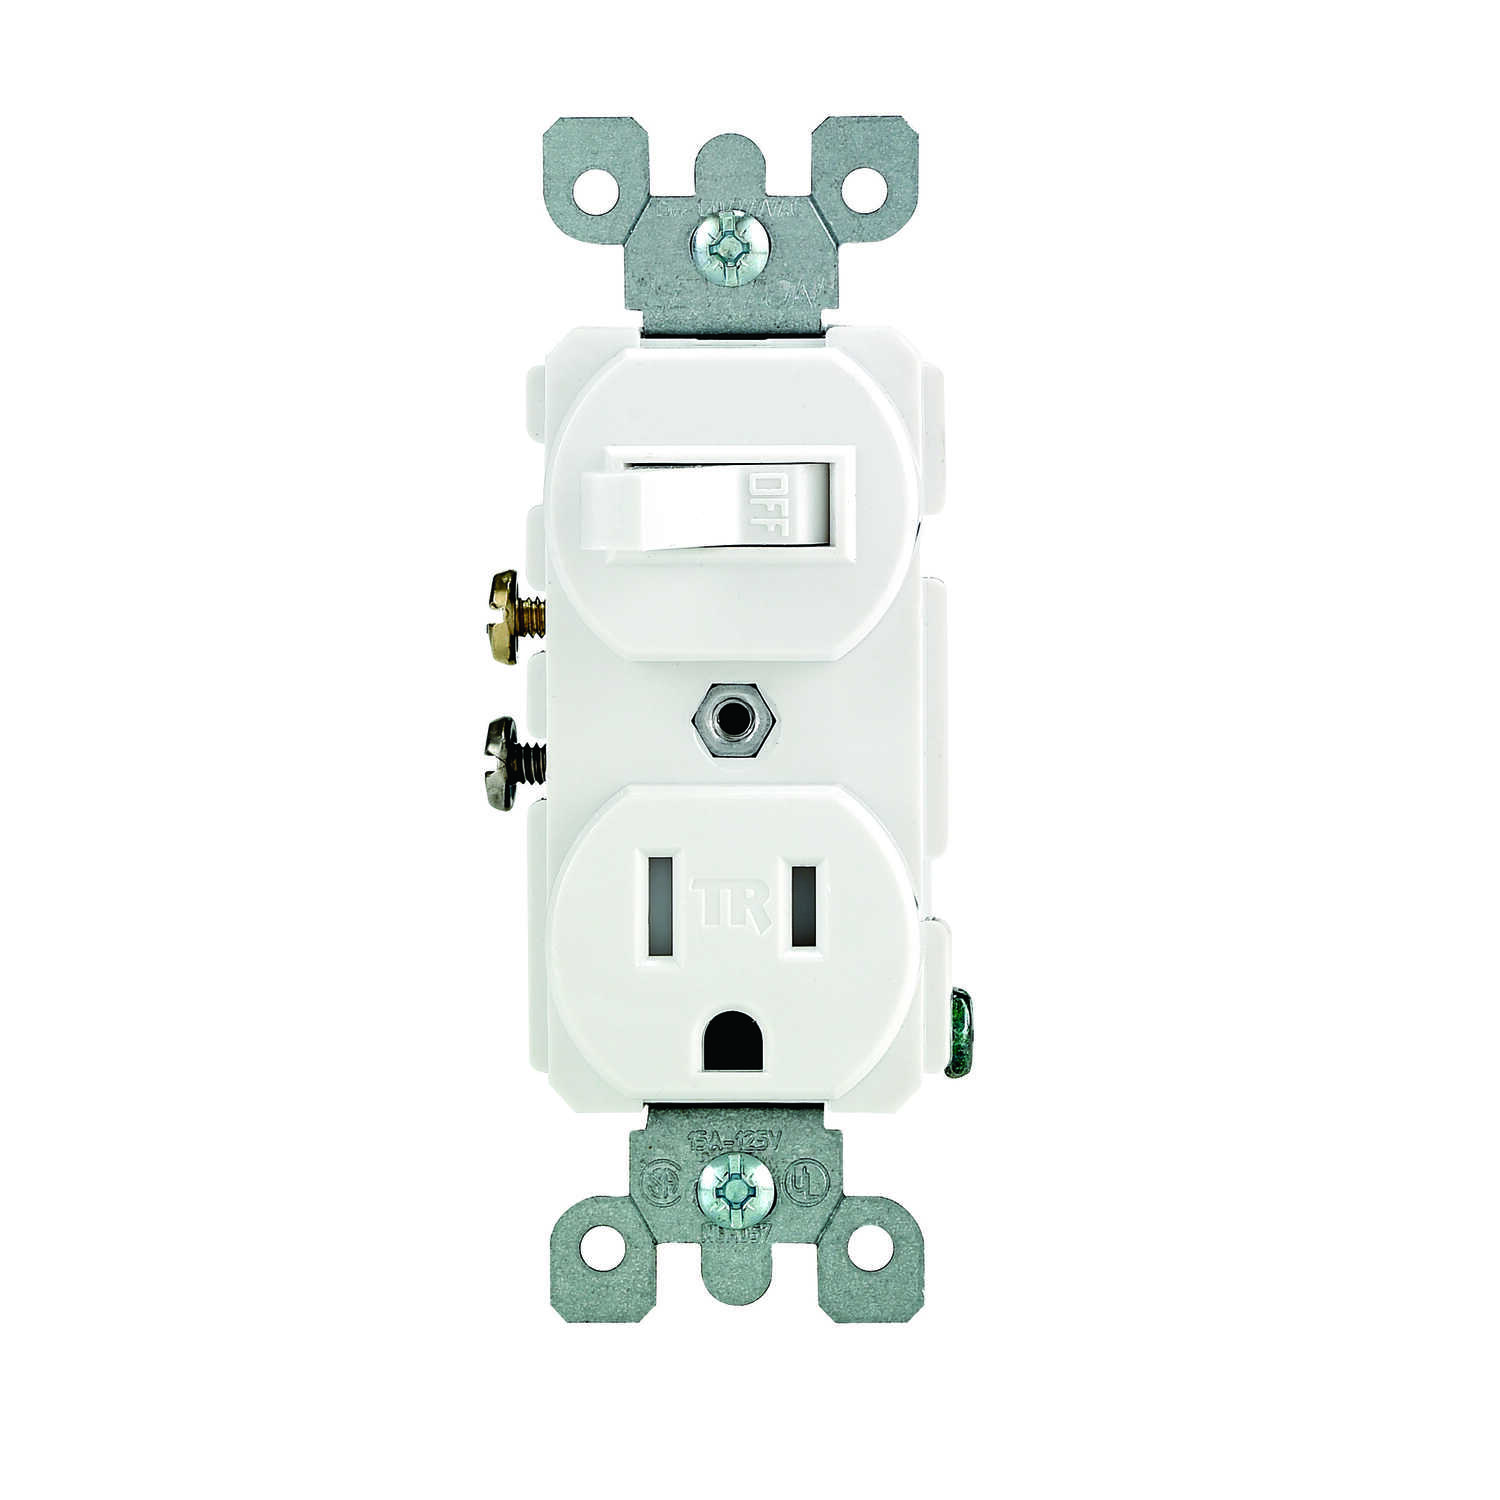 Leviton  15 amps 125 volt White  Combination Switch/Outlet  5-15R  1 pk